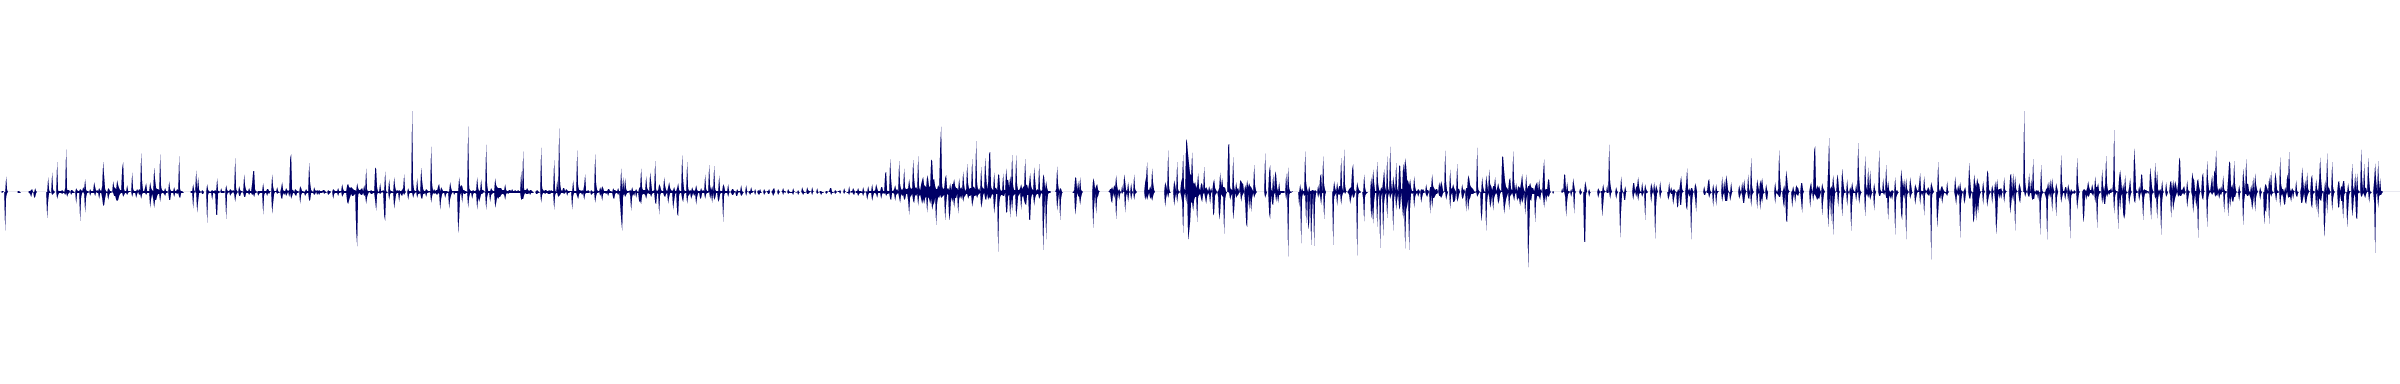 waveform of track #127797